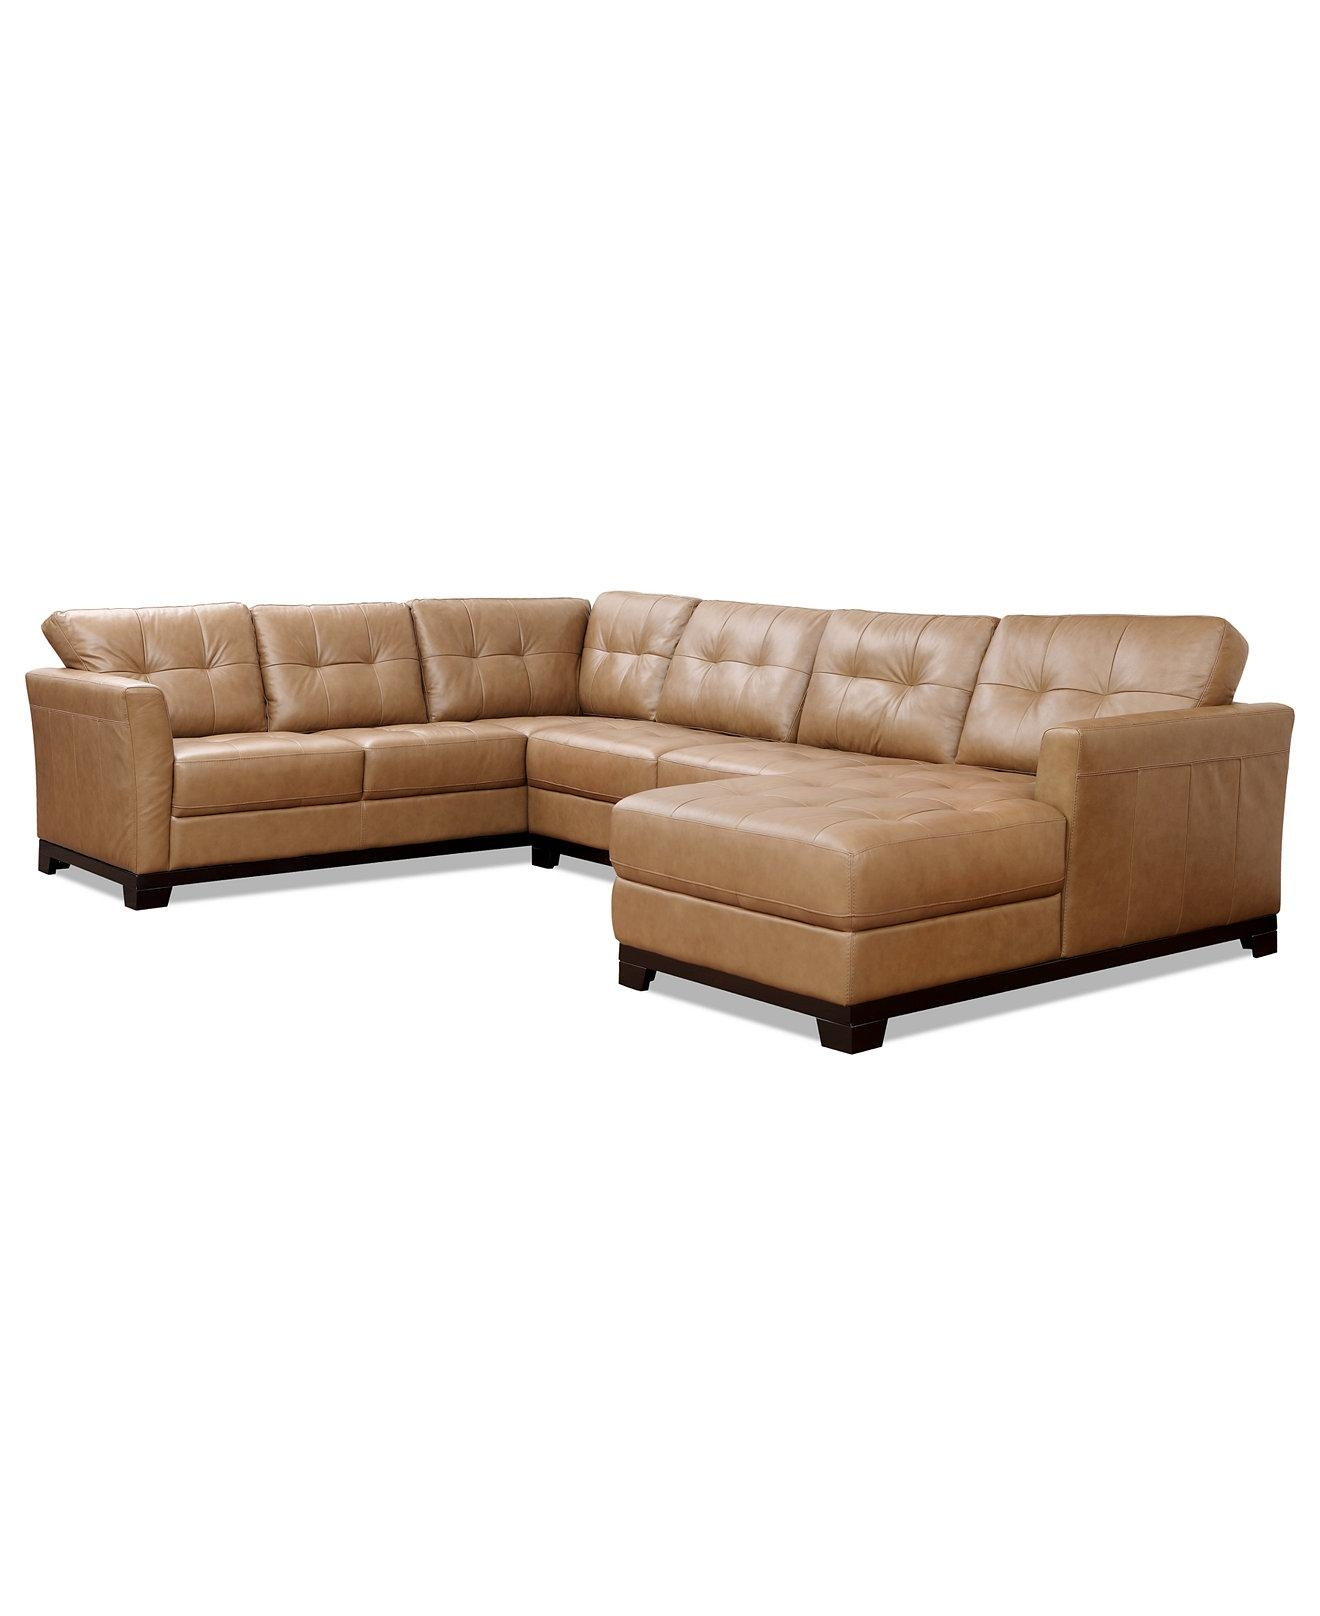 Sectional Sofas Macys 41 With Sectional Sofas Macys | Jinanhongyu Throughout Macys Leather Sofas Sectionals (View 1 of 20)